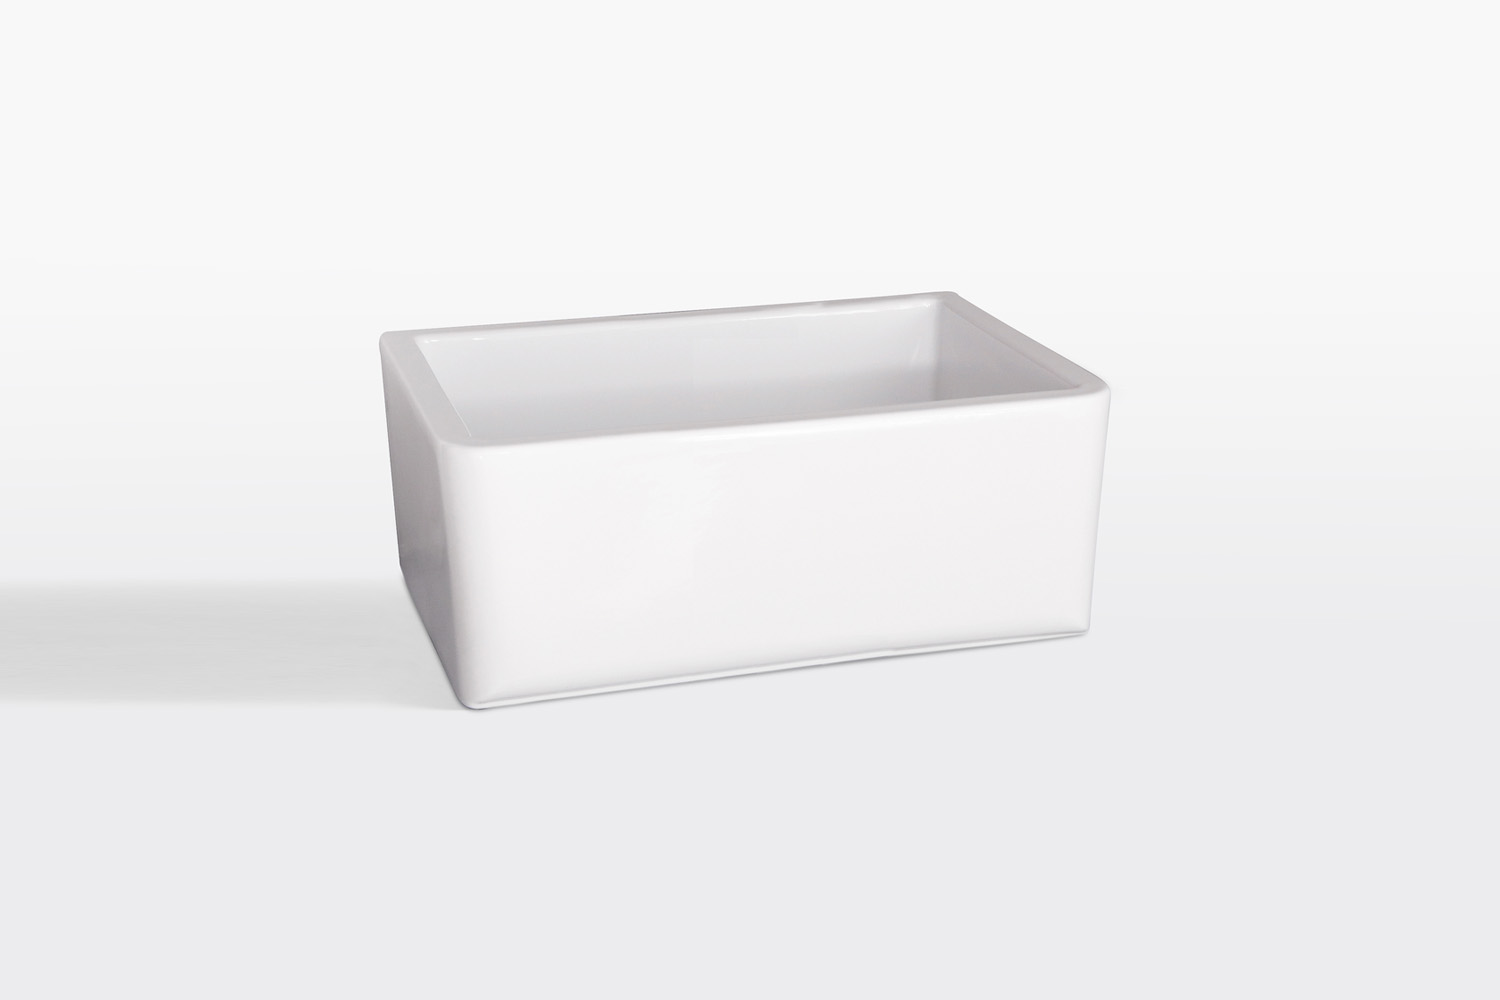 the fireclay kitchen sink is \$708 at rejuvenation. 19